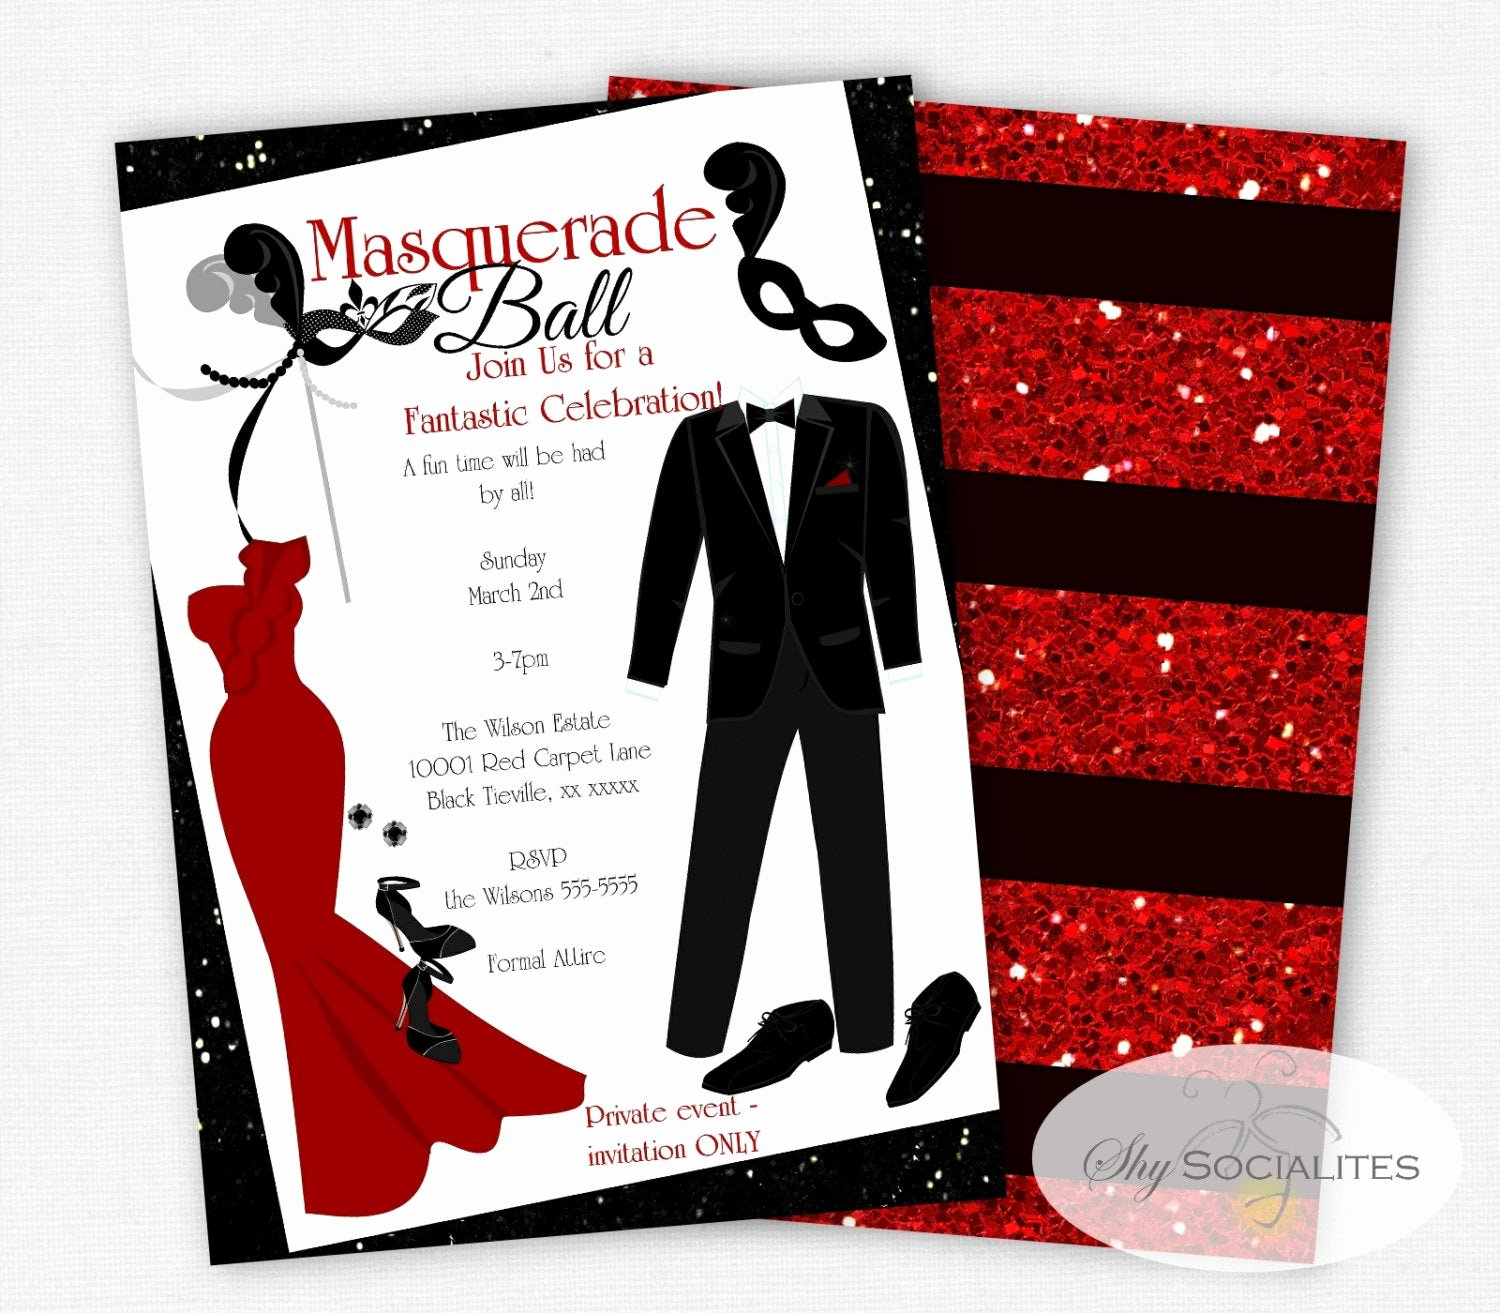 Red Carpet Invitation Template Free Elegant Masquerade Ball Invitation formal event Prom Red Carpet